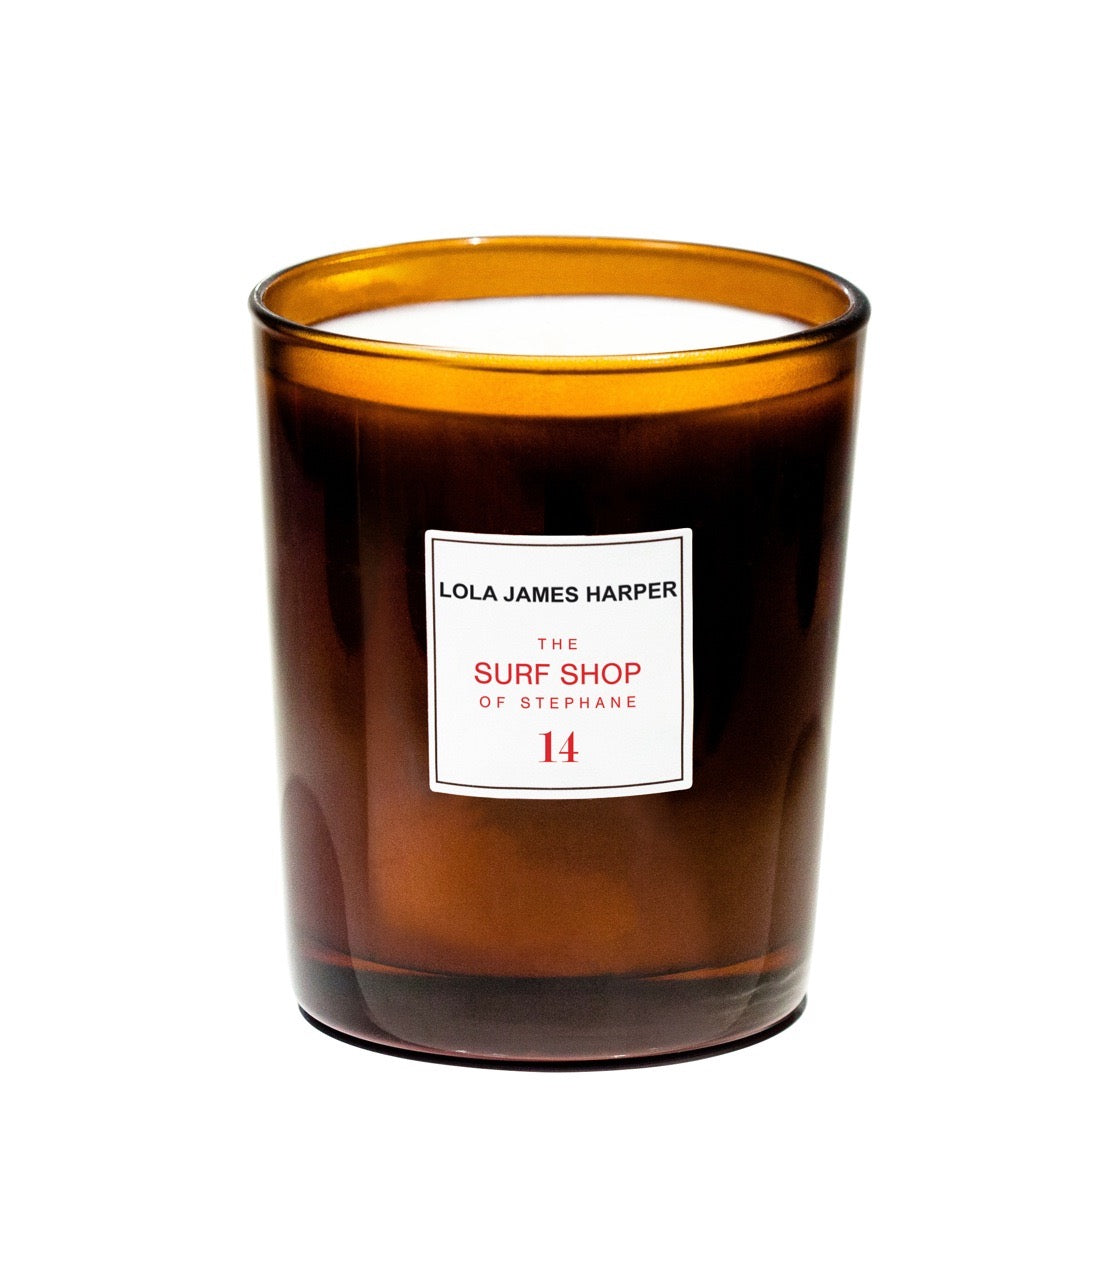 LOLA JAMES HARPER - 14 The Surf Shop of Stephane - 190G CANDLE